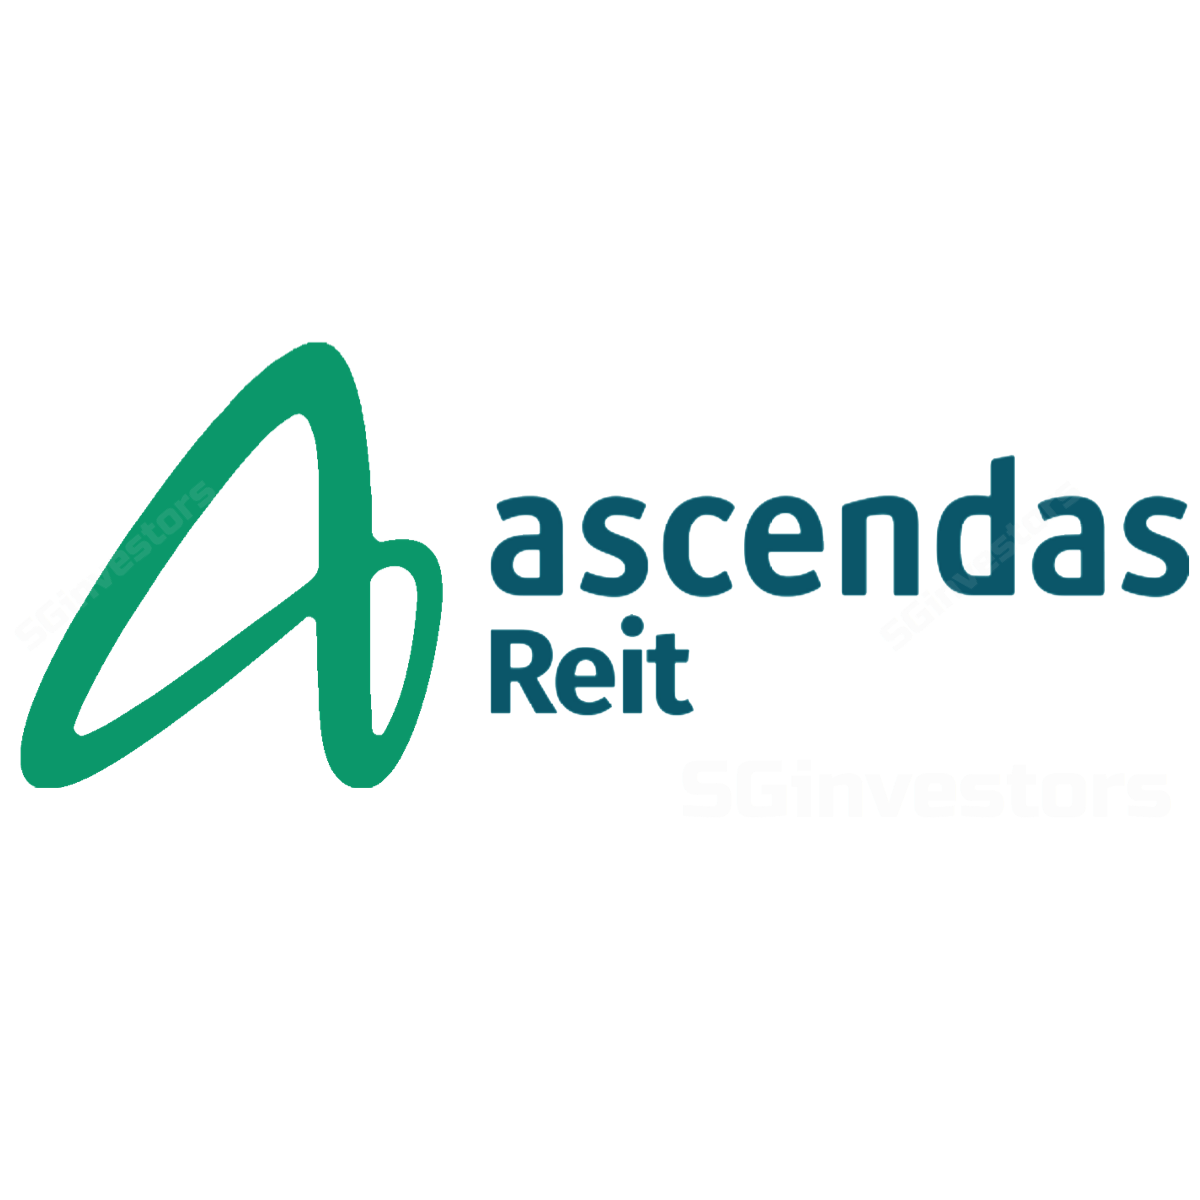 Ascendas REIT - RHB Invest 2018-04-24: On Solid Footing